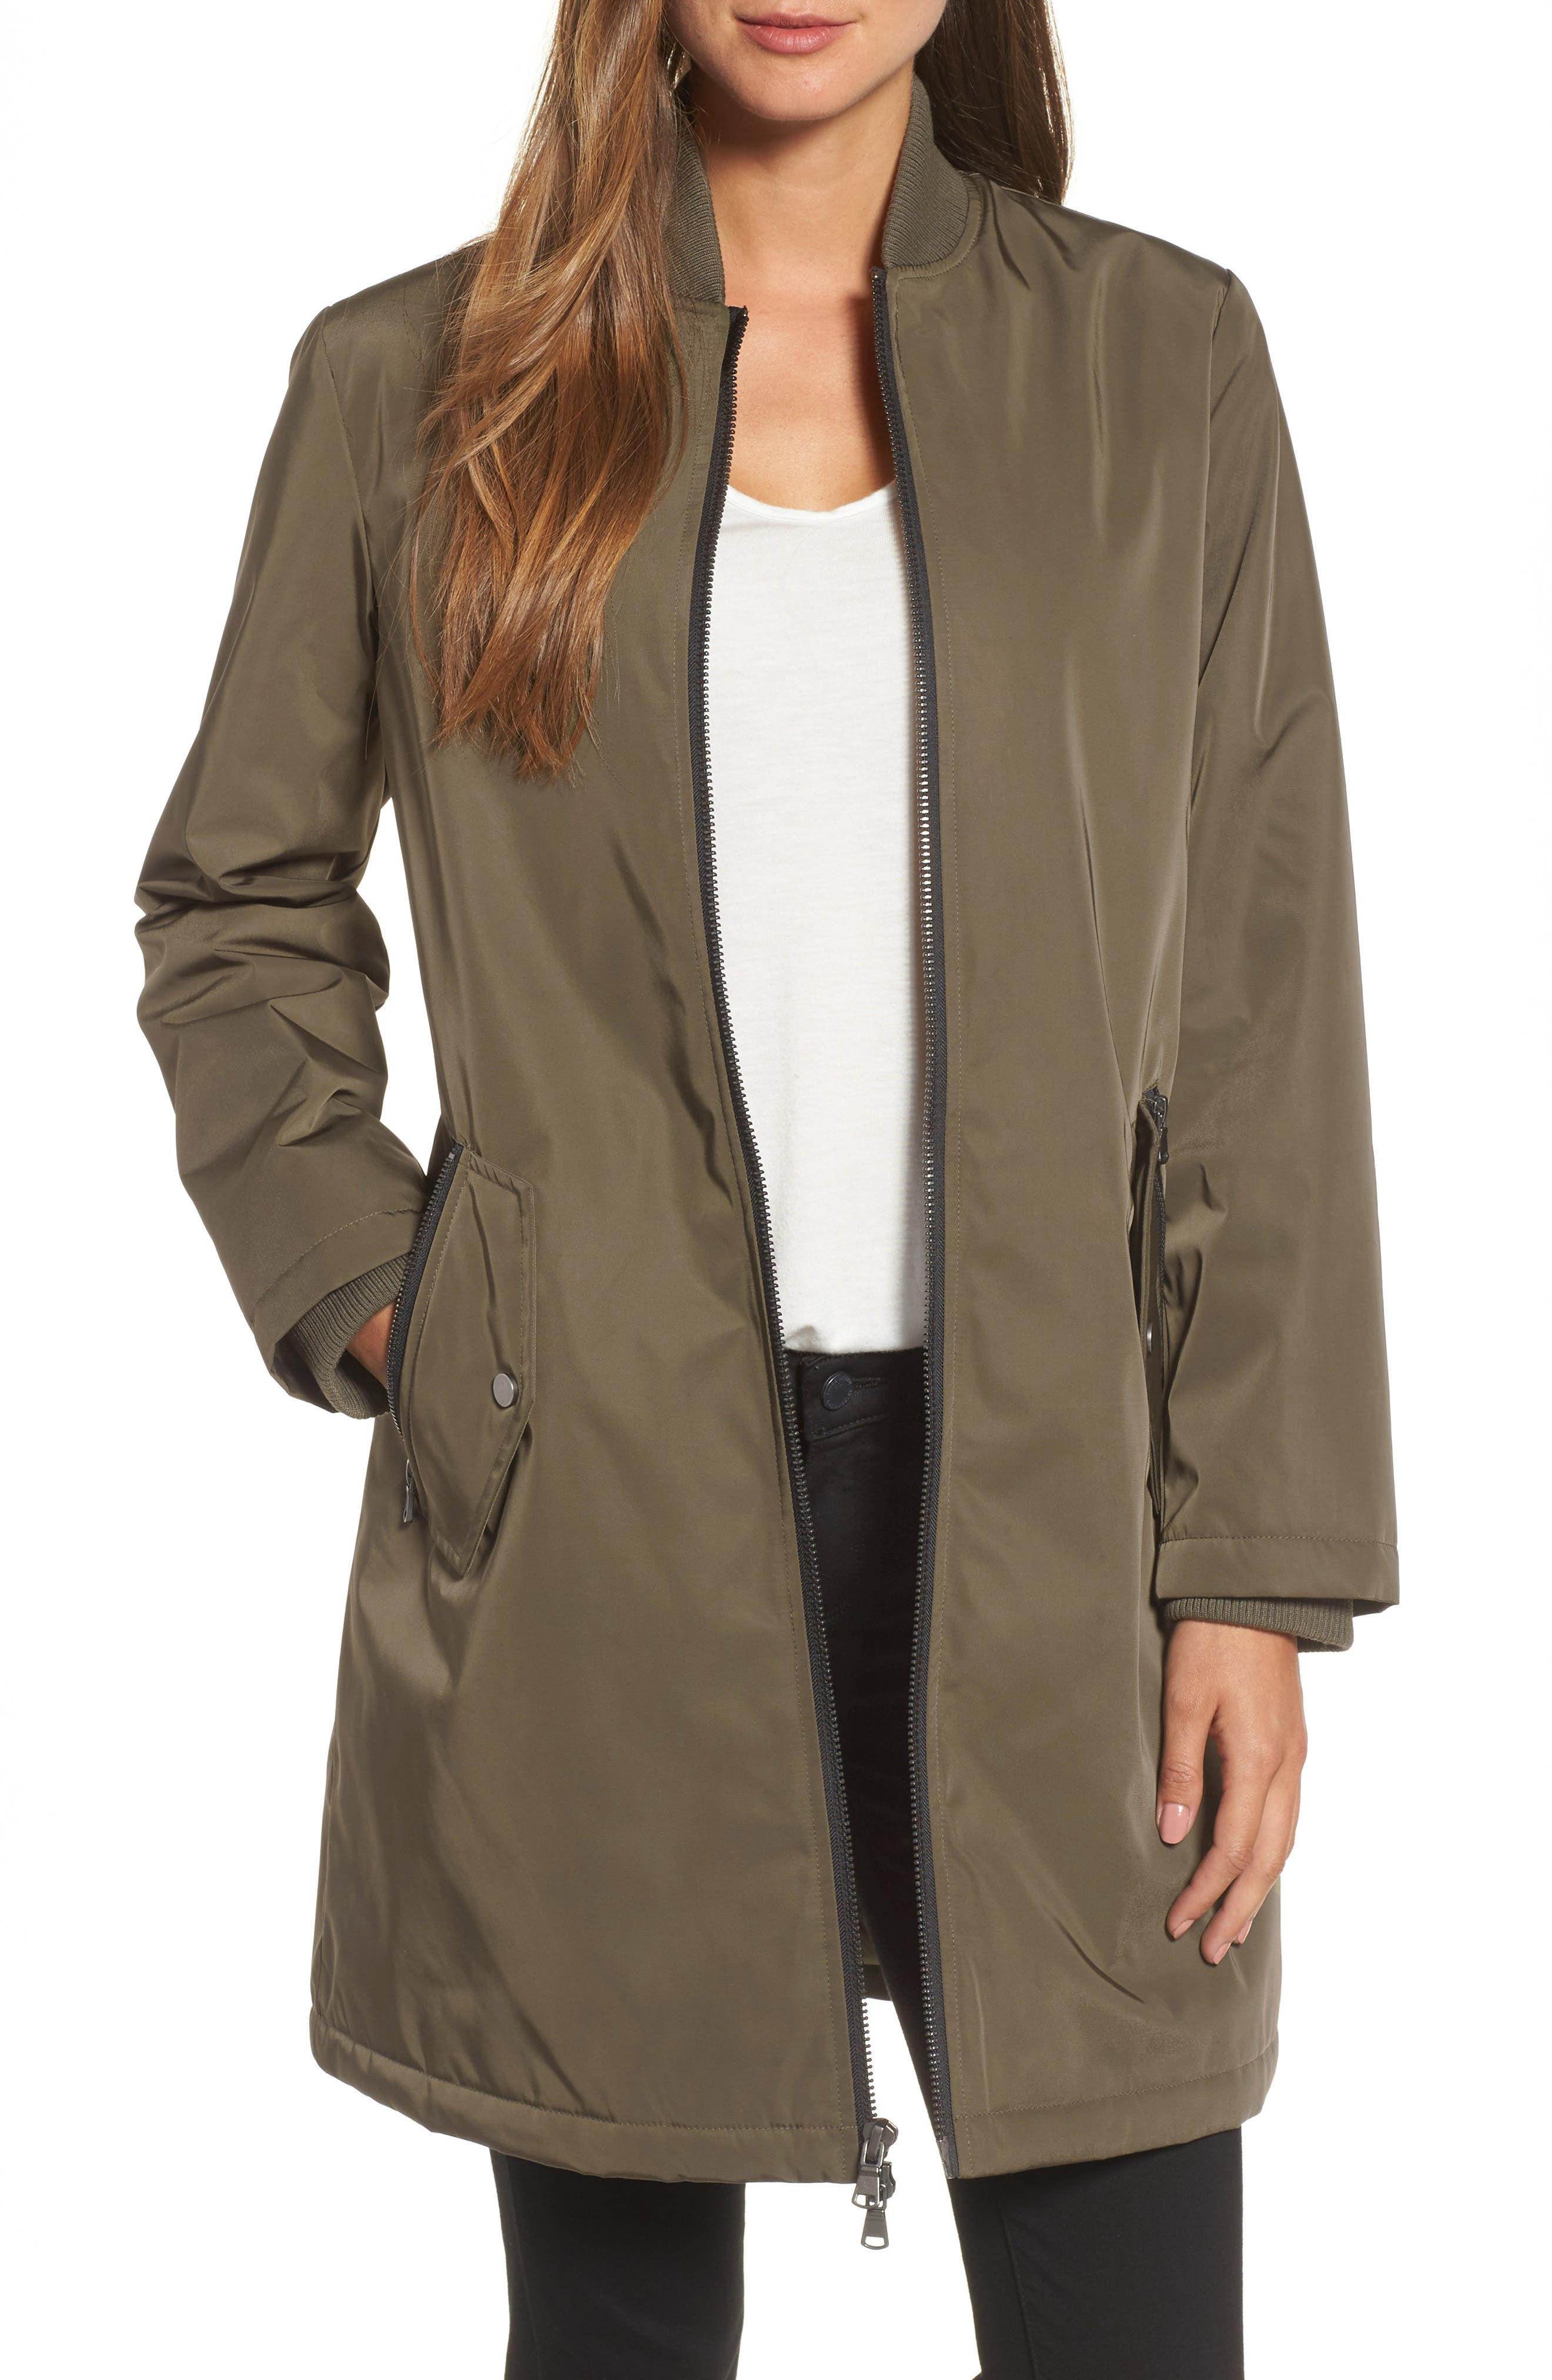 Calson<sup>®</sup> Long Bomber Jacket,                         Main,                         color, Olive